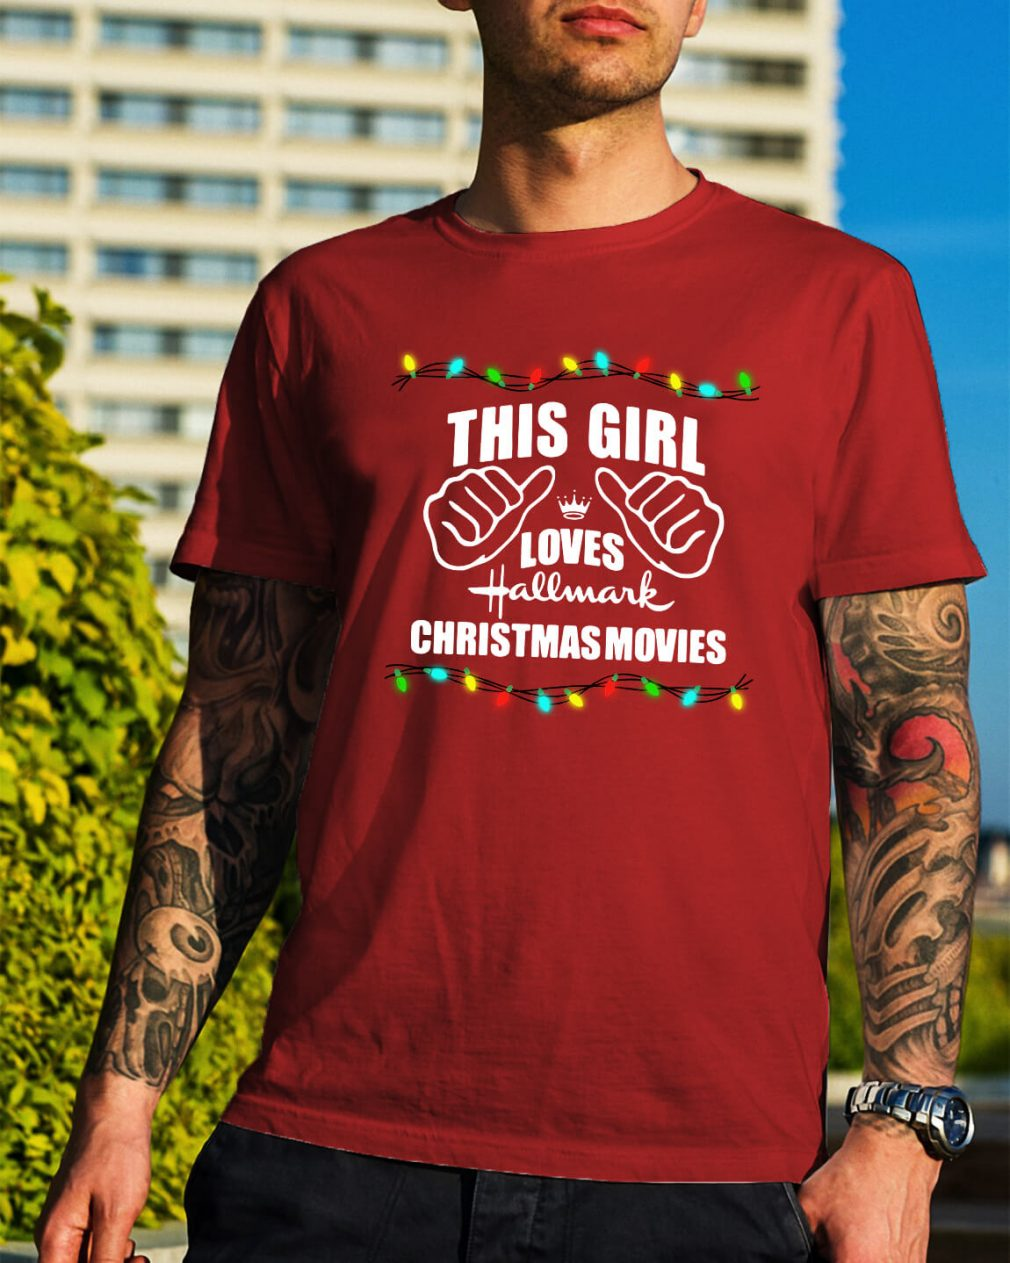 This girl loves Hallmark Christmas movies shirt